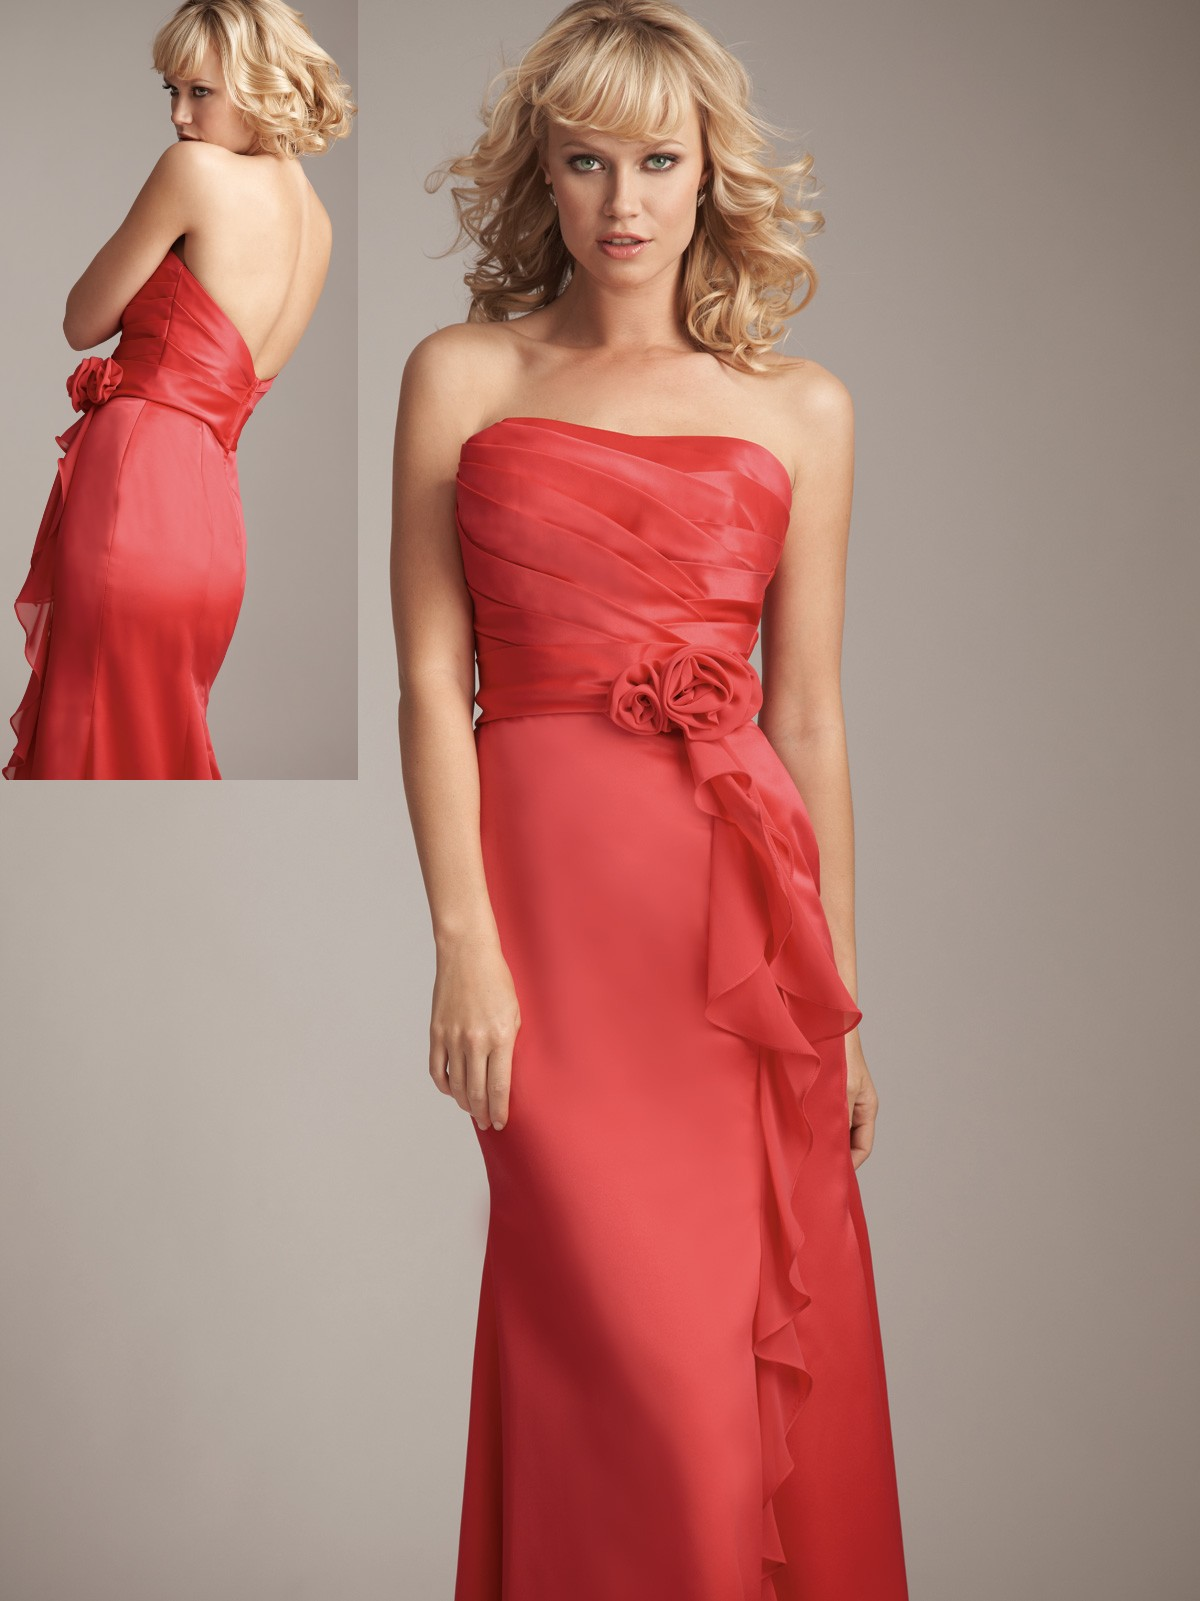 Custom made wedding party dresses persimmon bridesmaid dresses ombrellifo Gallery